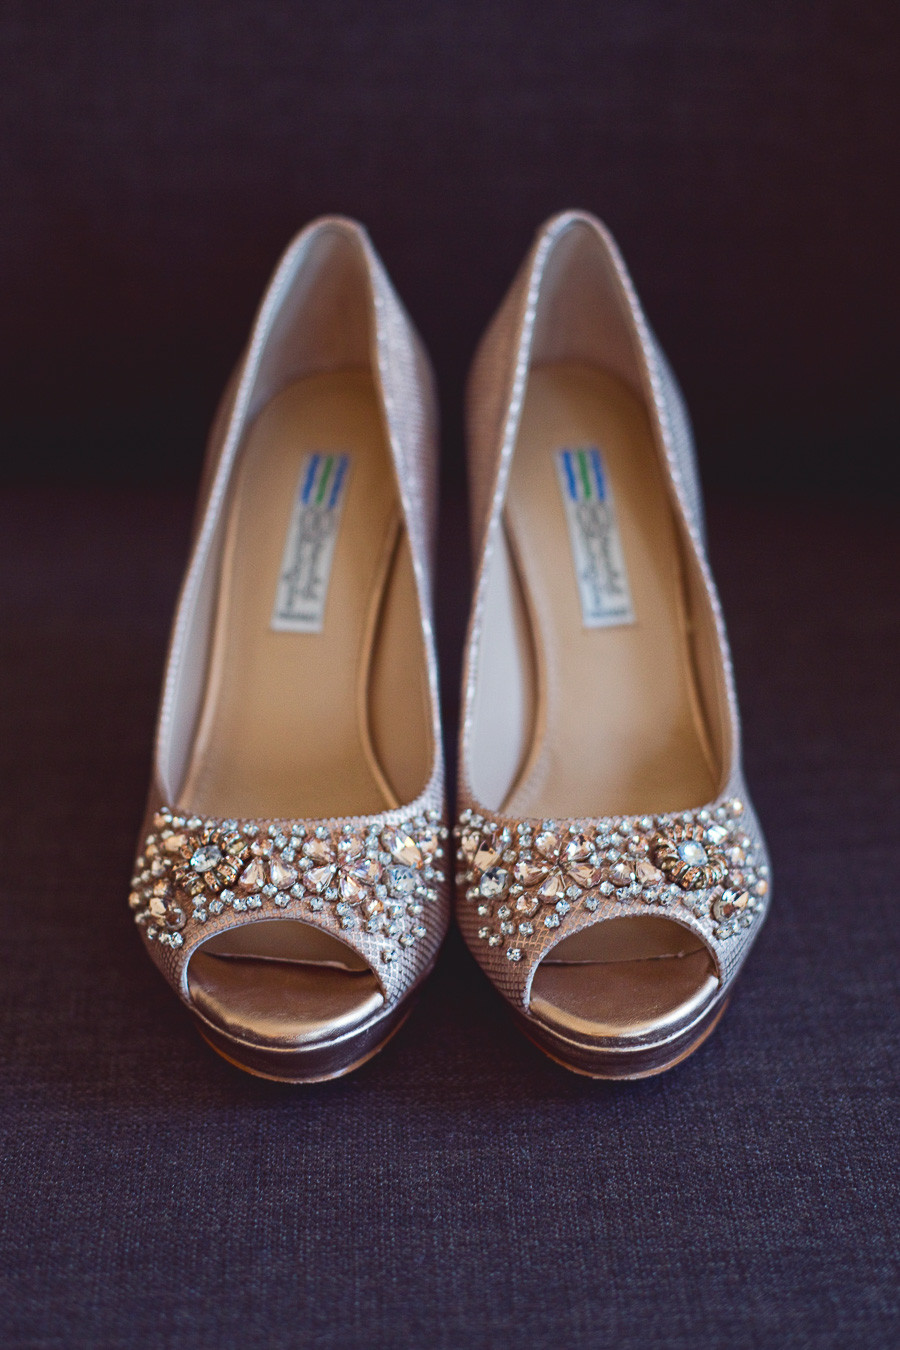 A pair of rose gold crystal wedding shoes for a bride.